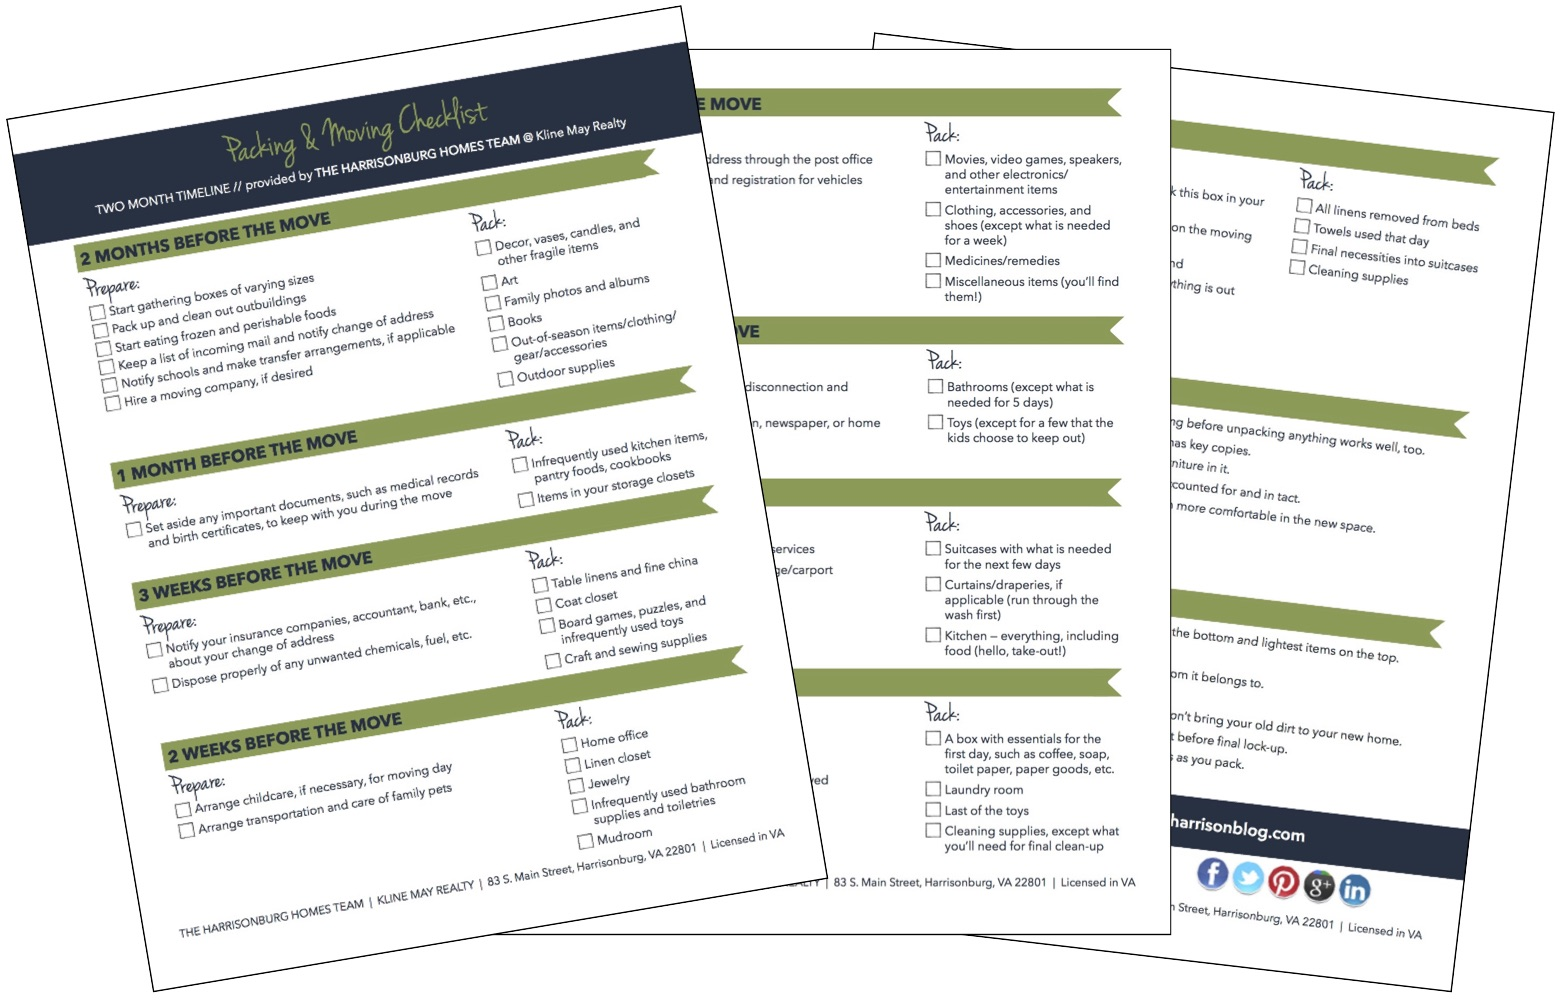 Packing and Moving Checklist [printable] | The Harrisonburg Homes Team